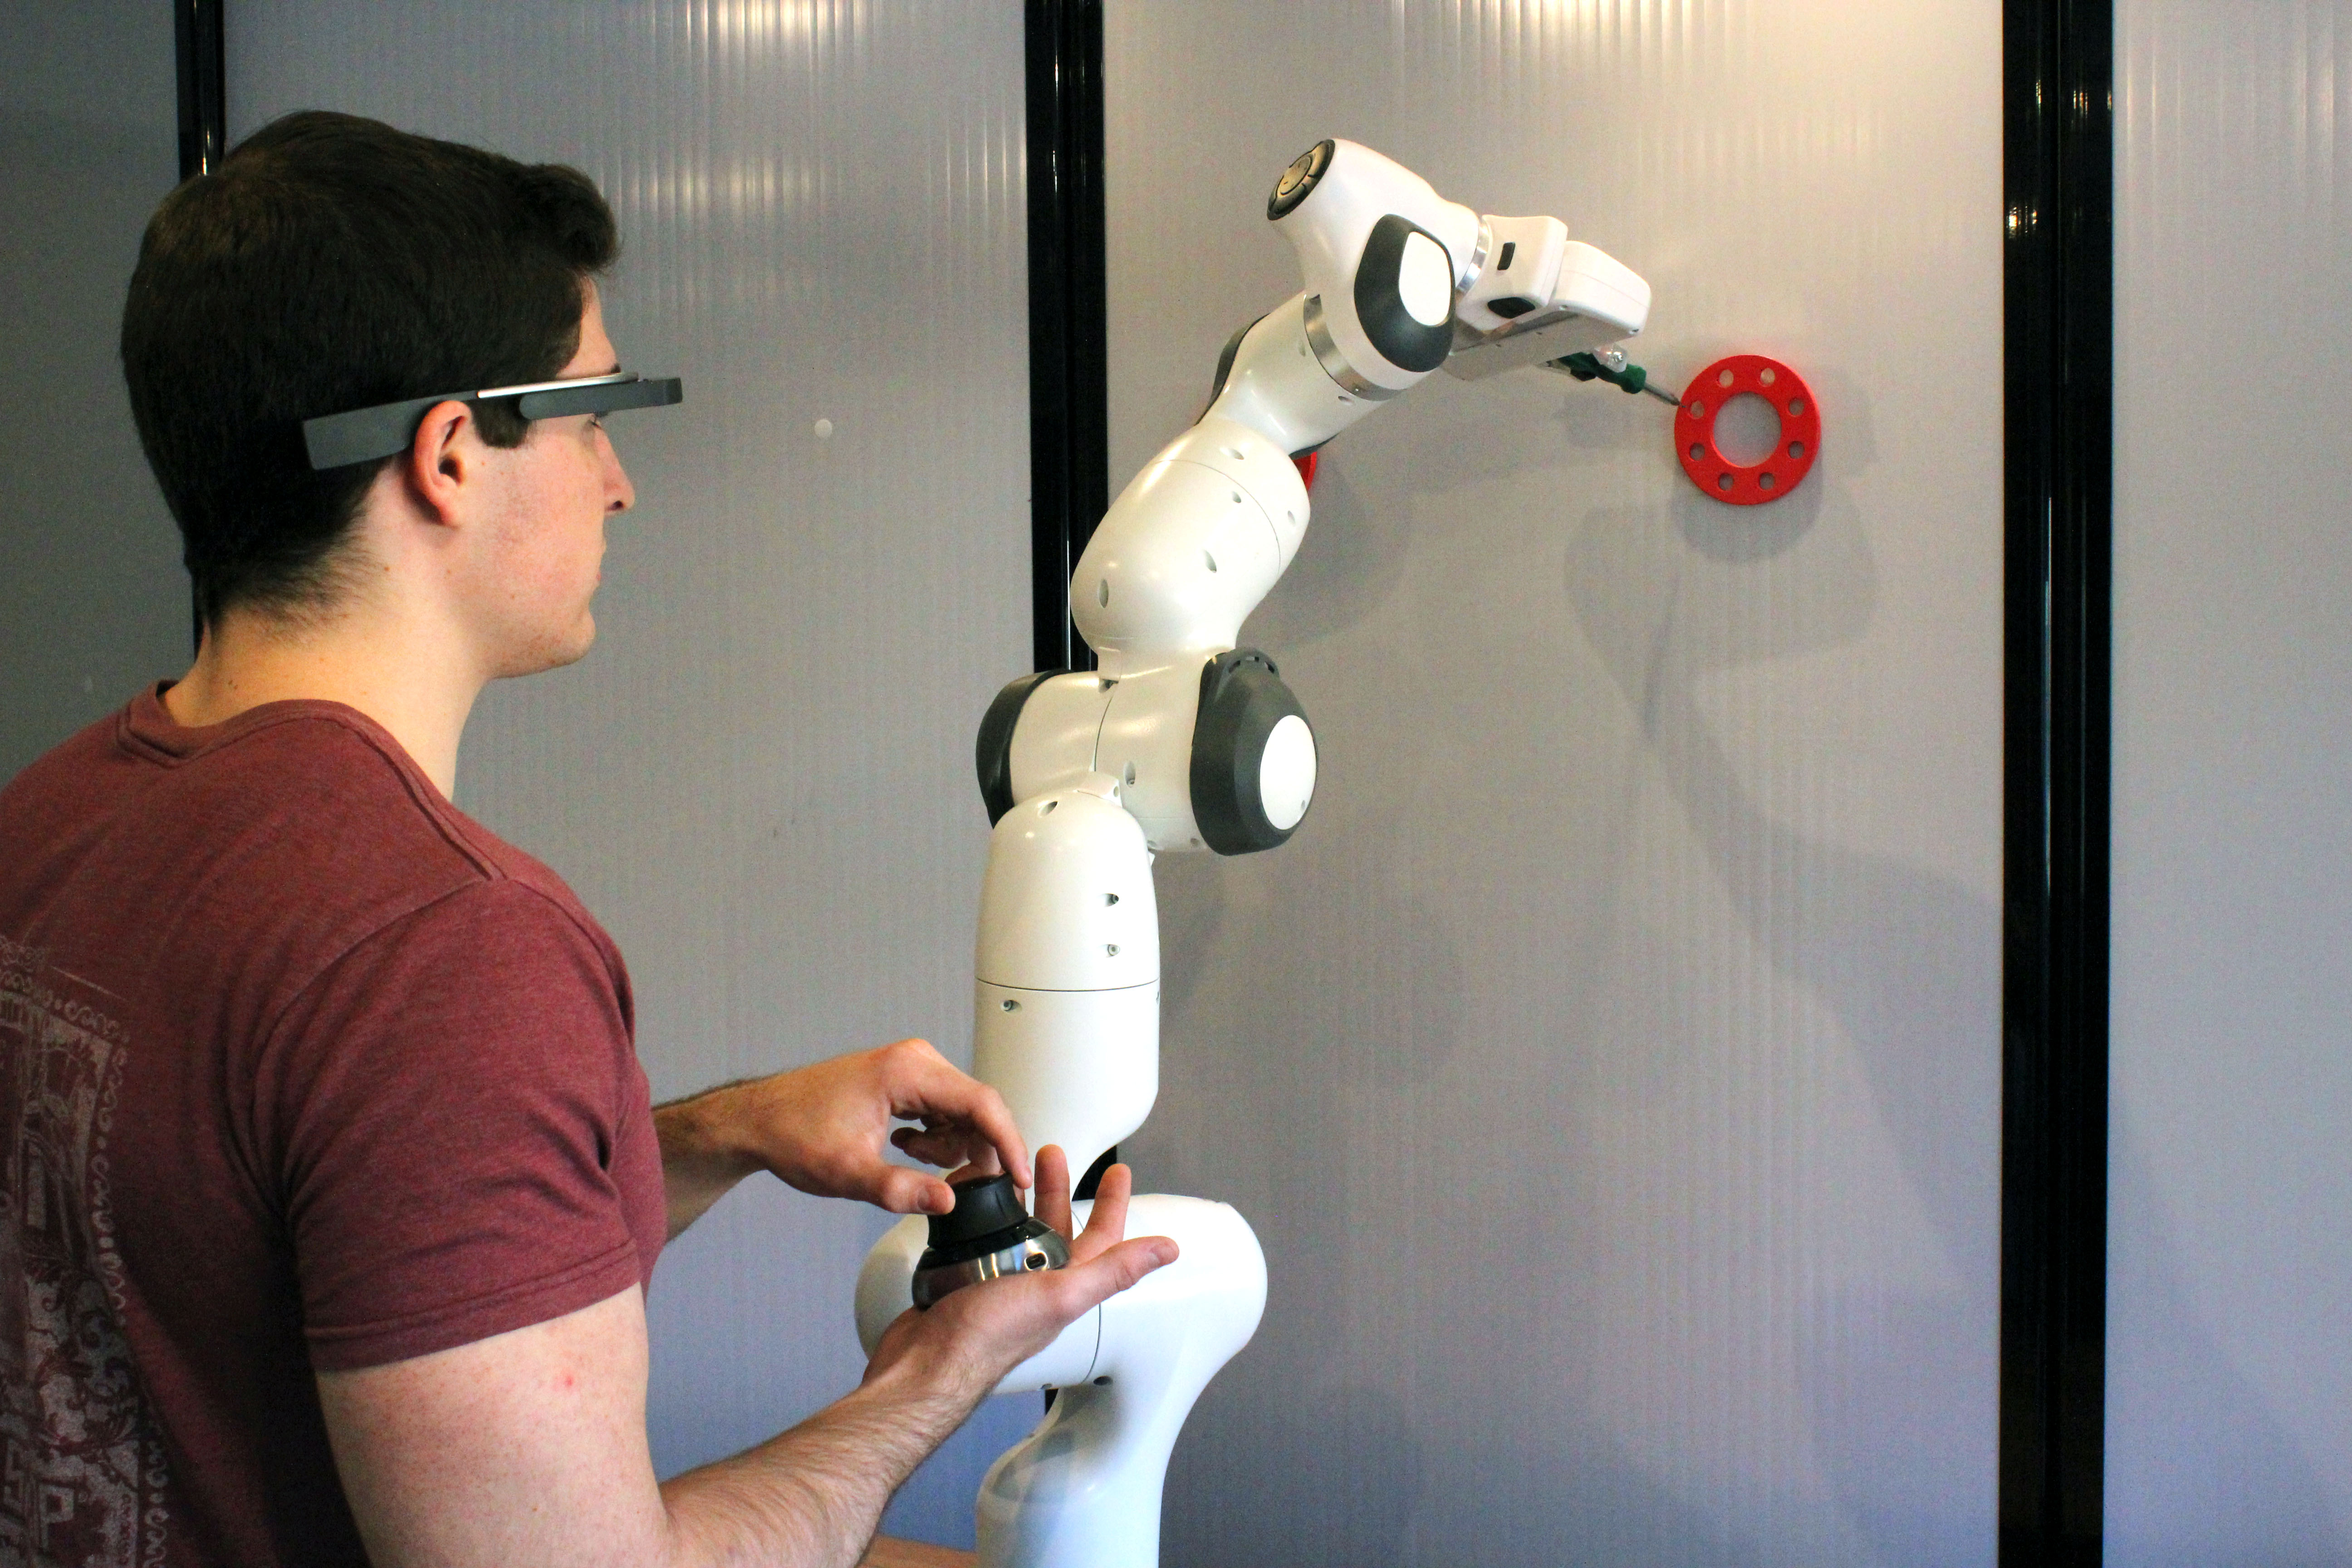 The research team's first prototype of its shared human-robot collaboration platform. An operator controls the arm to perform a representative task with assistance from a heads-up display.